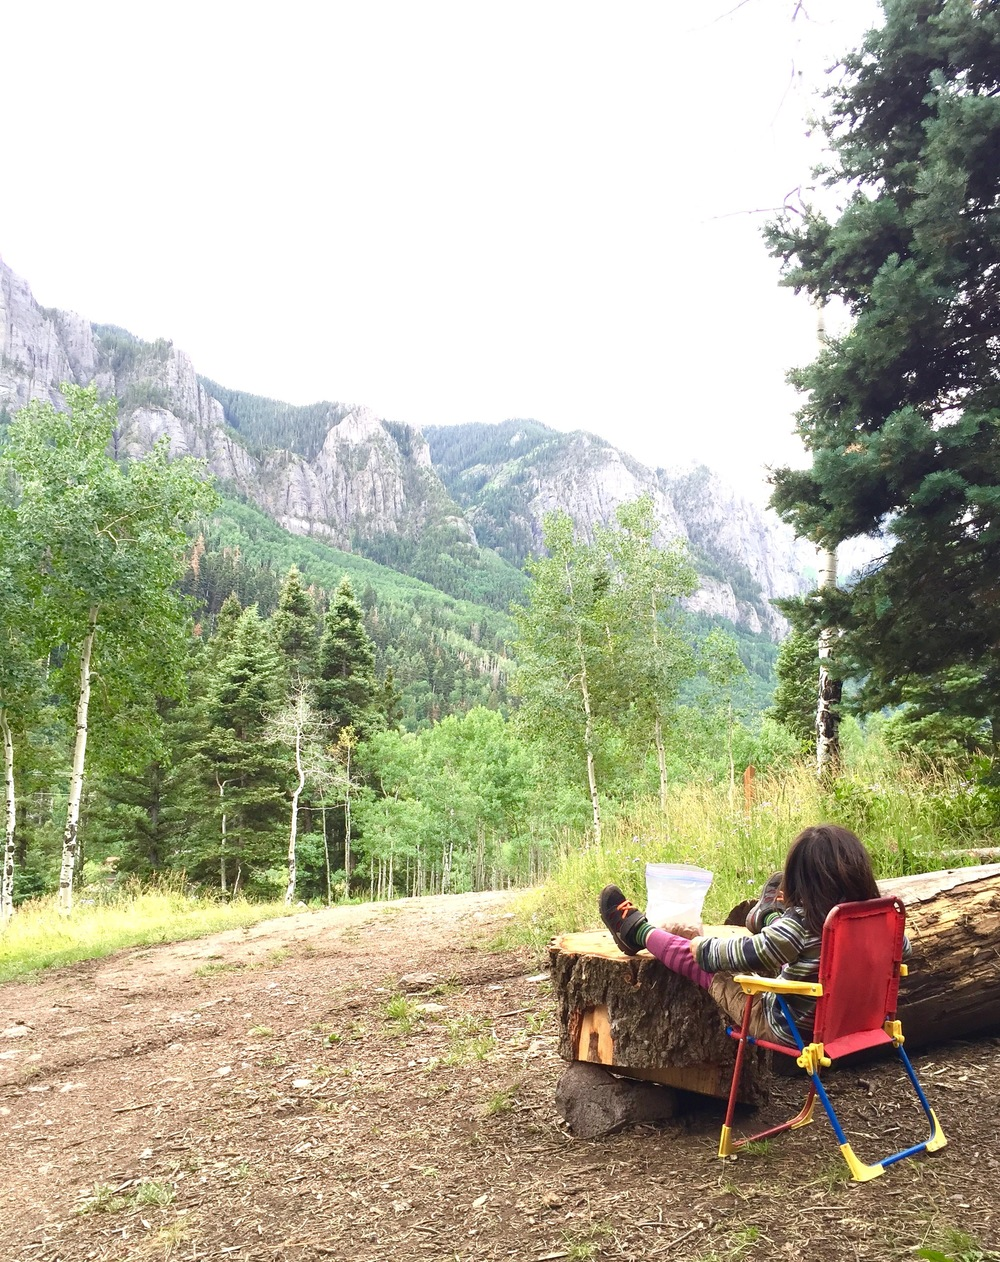 Just Kickin' It. Angel Creek Campgrounds, Ouray, Colorado July 2015